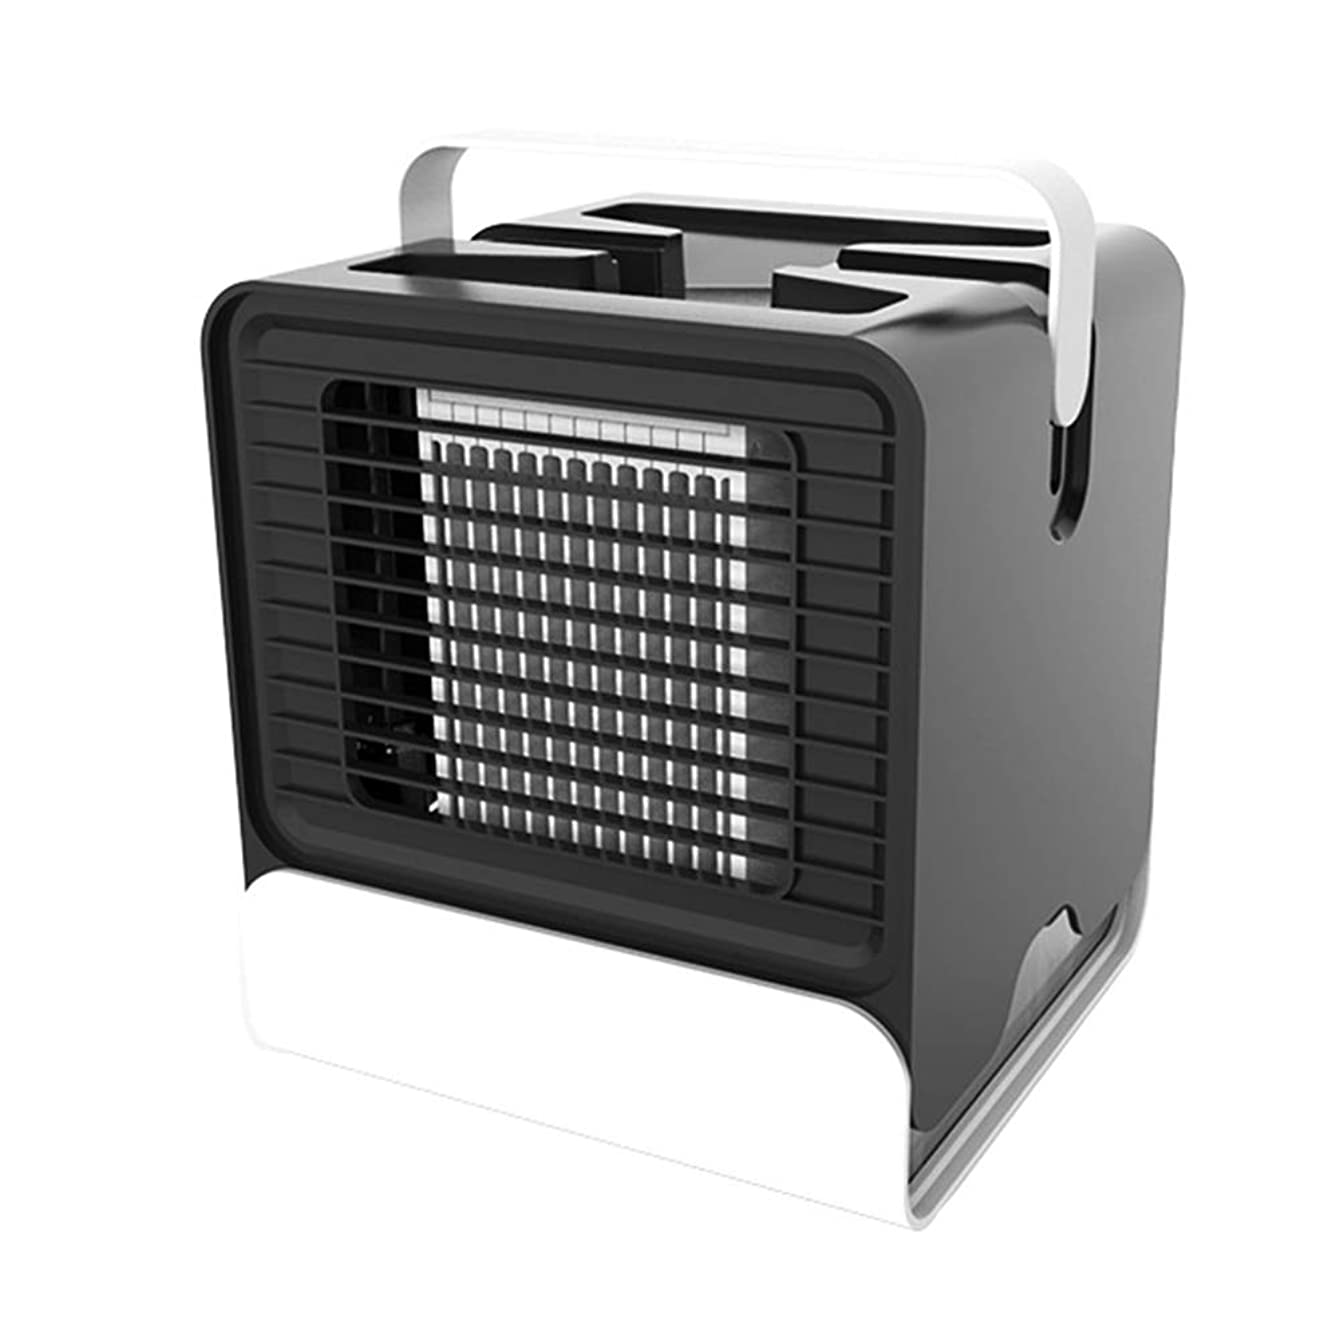 Shuohu Air Conditioner Humidifier Cooler Fan,USB Charging Mini Portable for Office Home Black